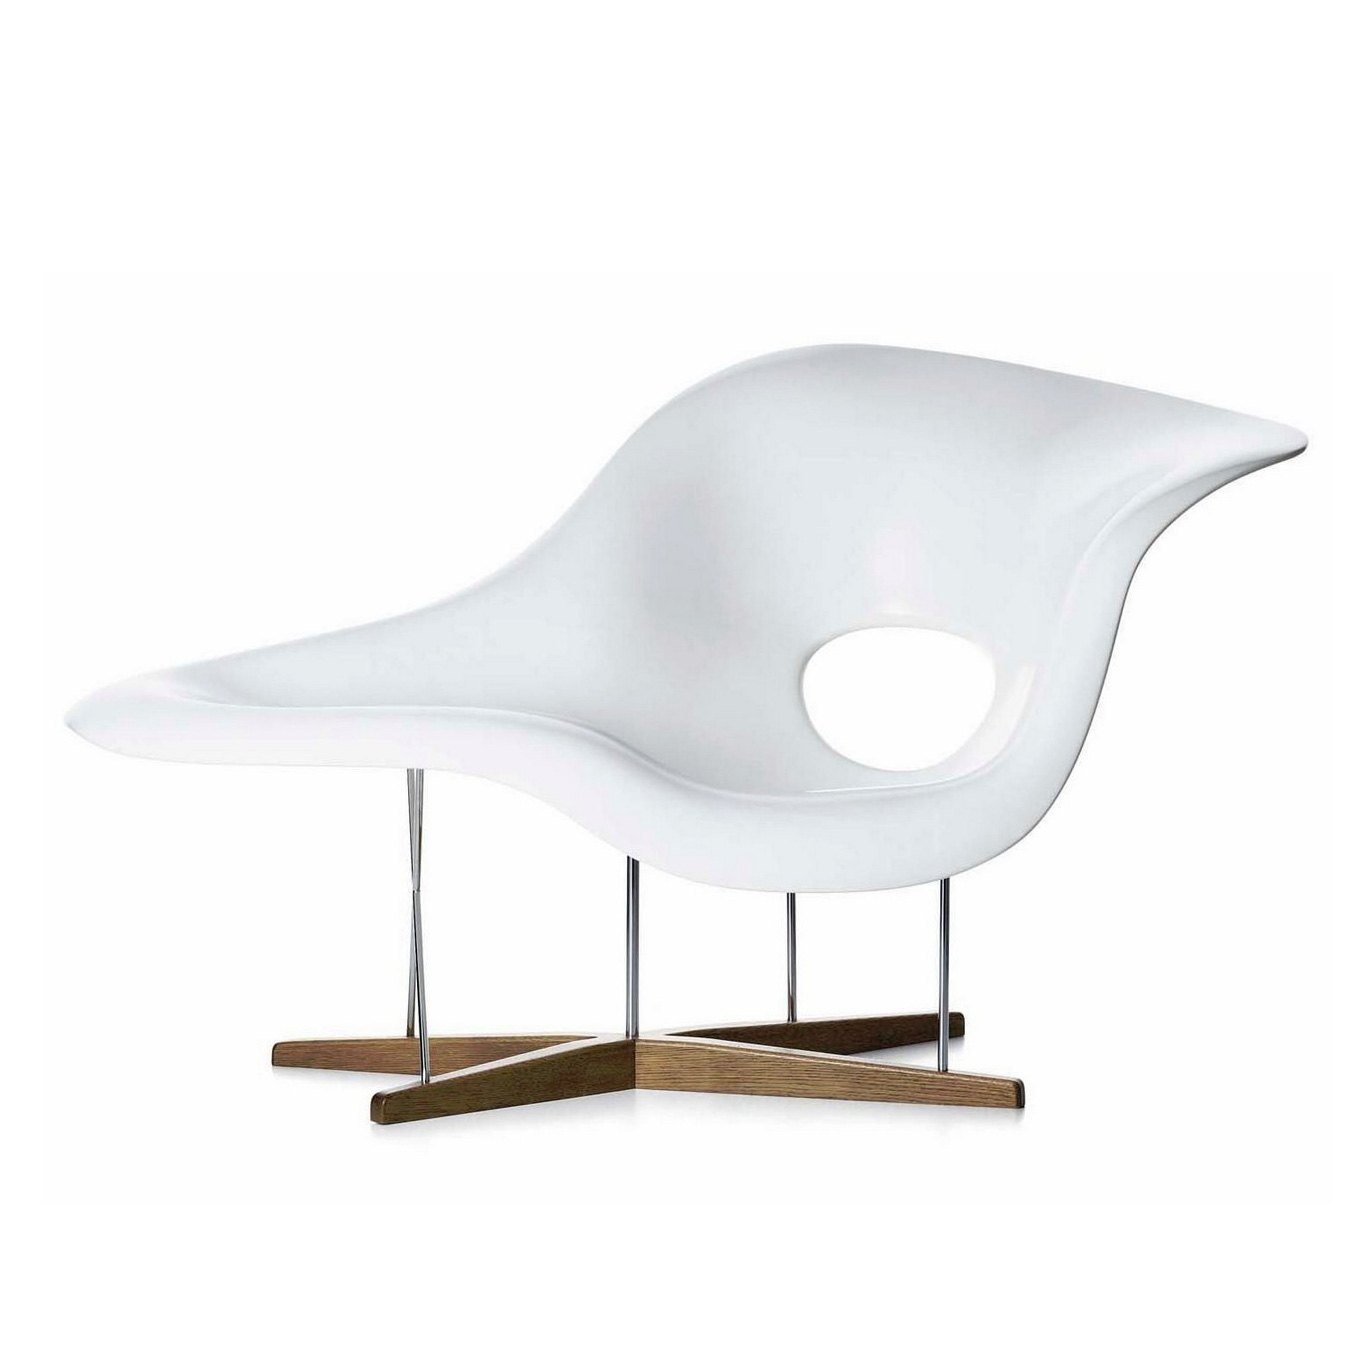 Charles eames chaise longue bauhaus chaiselongue for Chaise longue chilienne